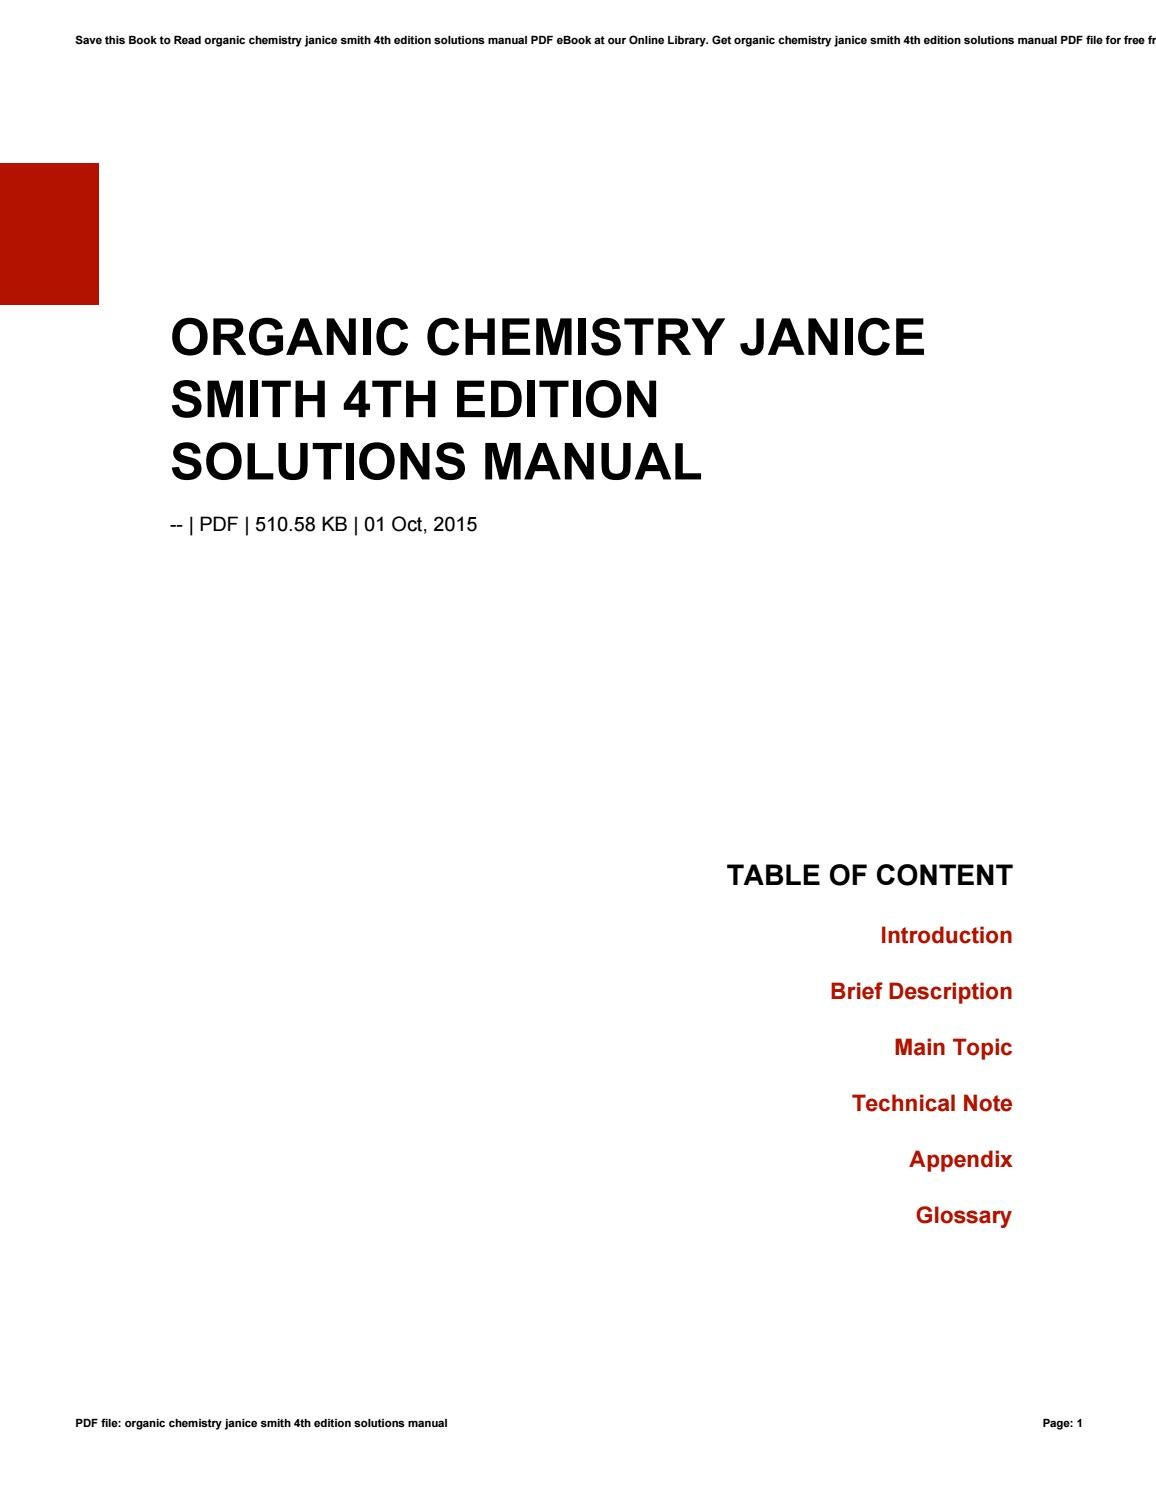 Organic chemistry janice smith 4th edition solutions manual by xf97 - issuu